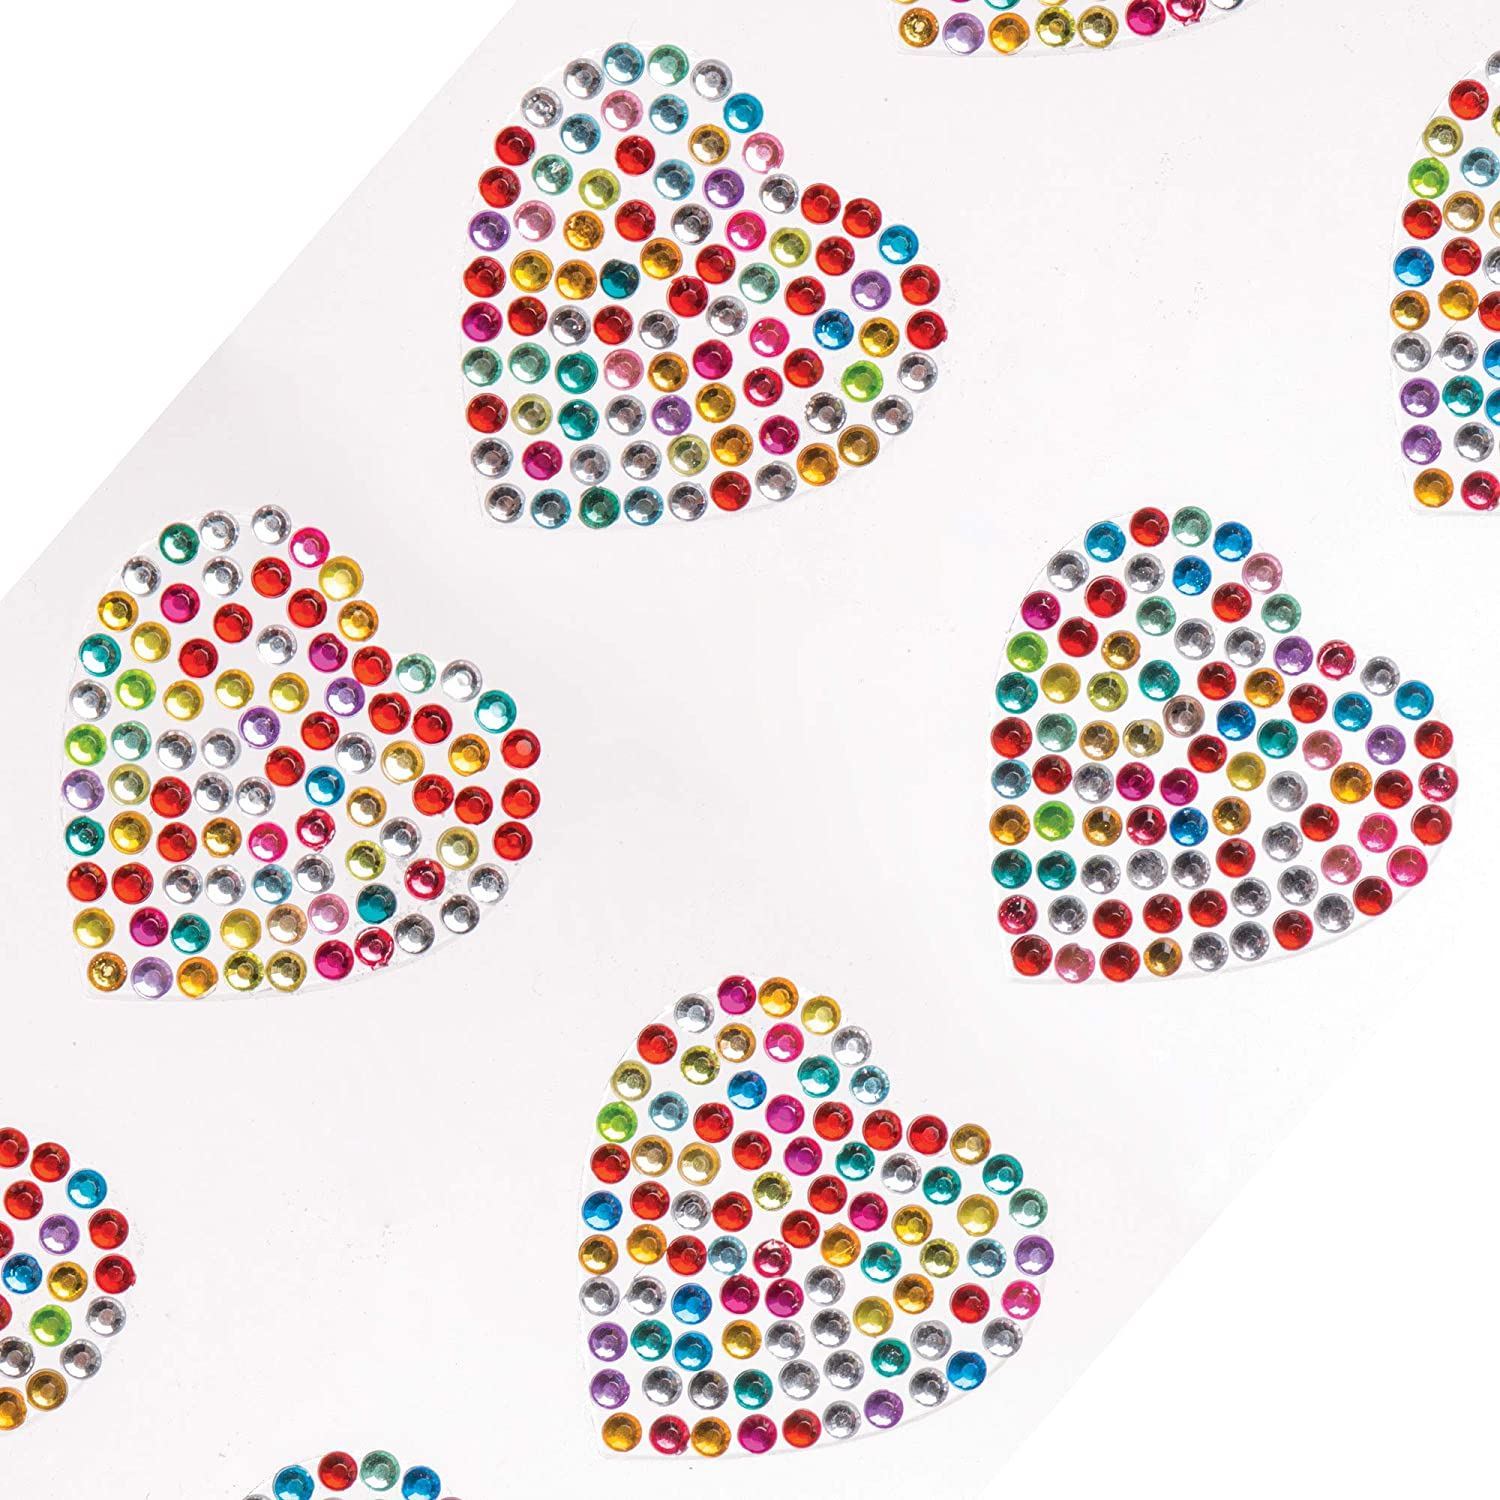 Embellishments for Kids Arts and Crafts Pack of 12 Mothers Day or Carnival // Mardi Gras Decoration for Valentines Baker Ross Rainbow Heart Crystal Gem Stickers